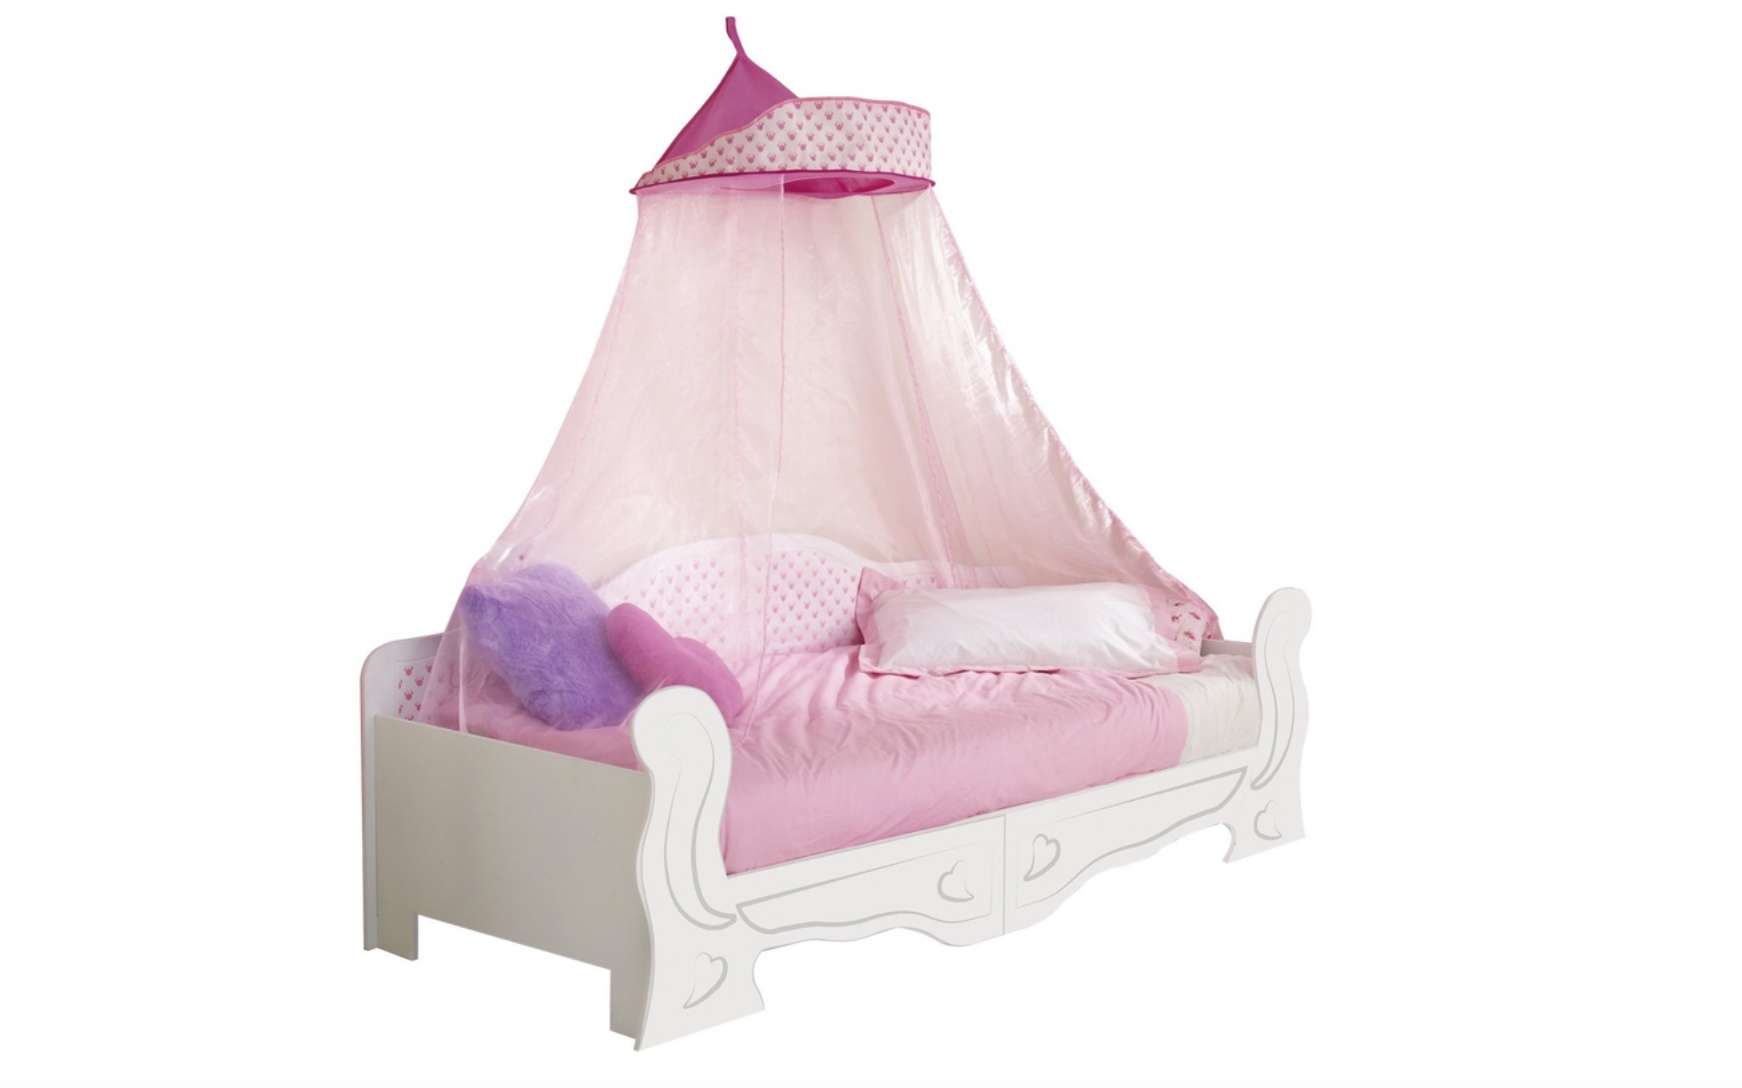 kinderbett bett himmelbett minnie maus rosa matratze 200x90 neu 2521883 ebay. Black Bedroom Furniture Sets. Home Design Ideas